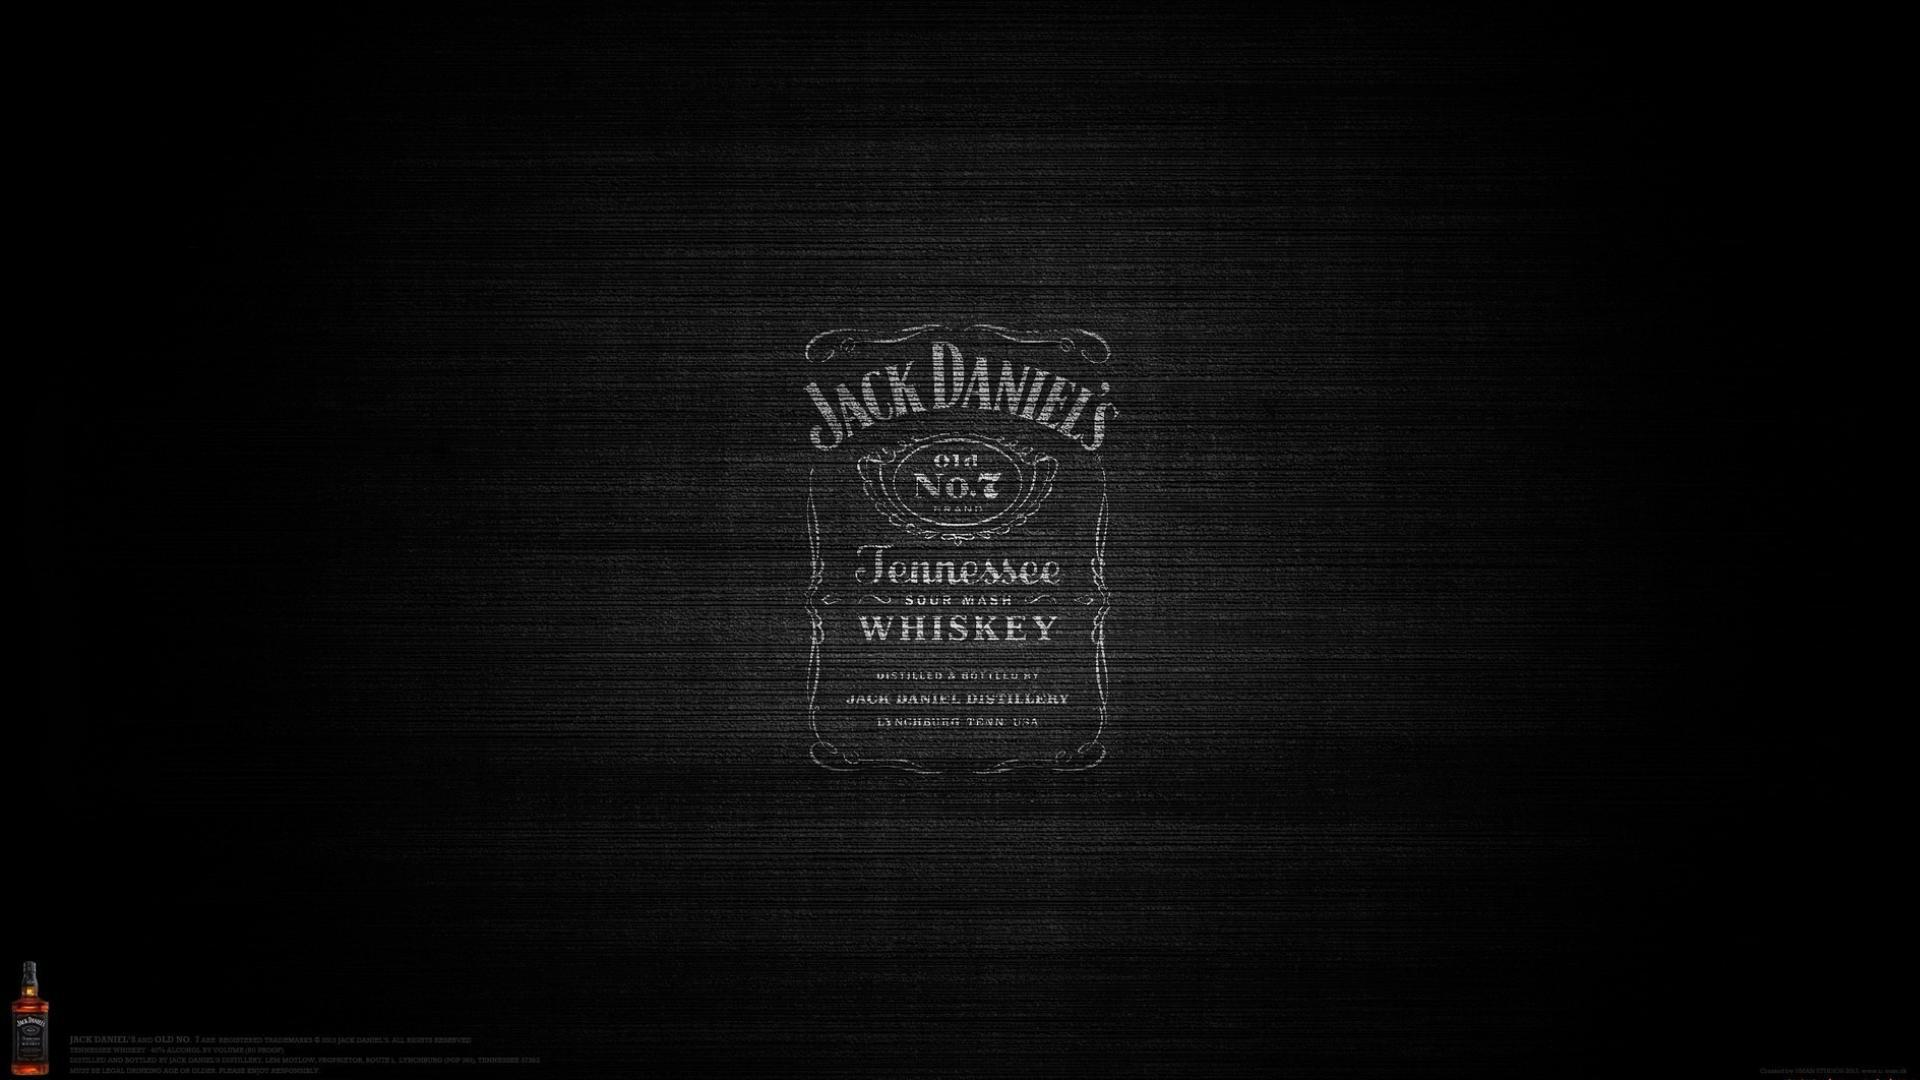 Jack daniels high definition wallpapers voltagebd Gallery